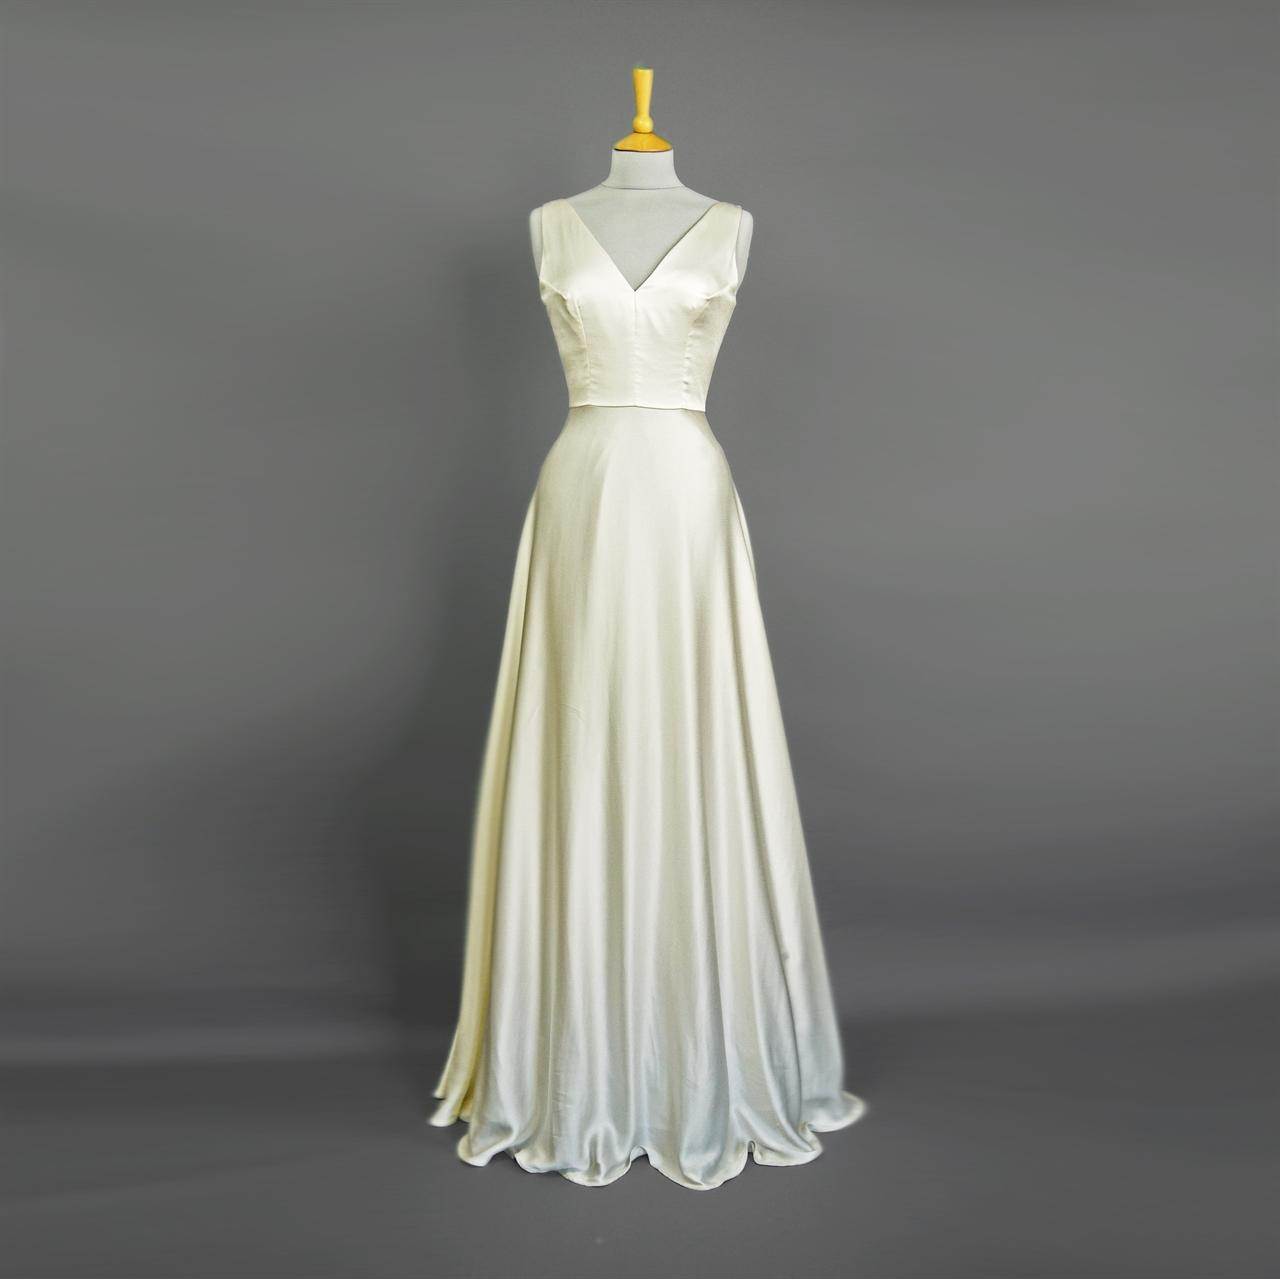 Coco 1920s Wedding Gown In Vintage Ivory Satin Crepe